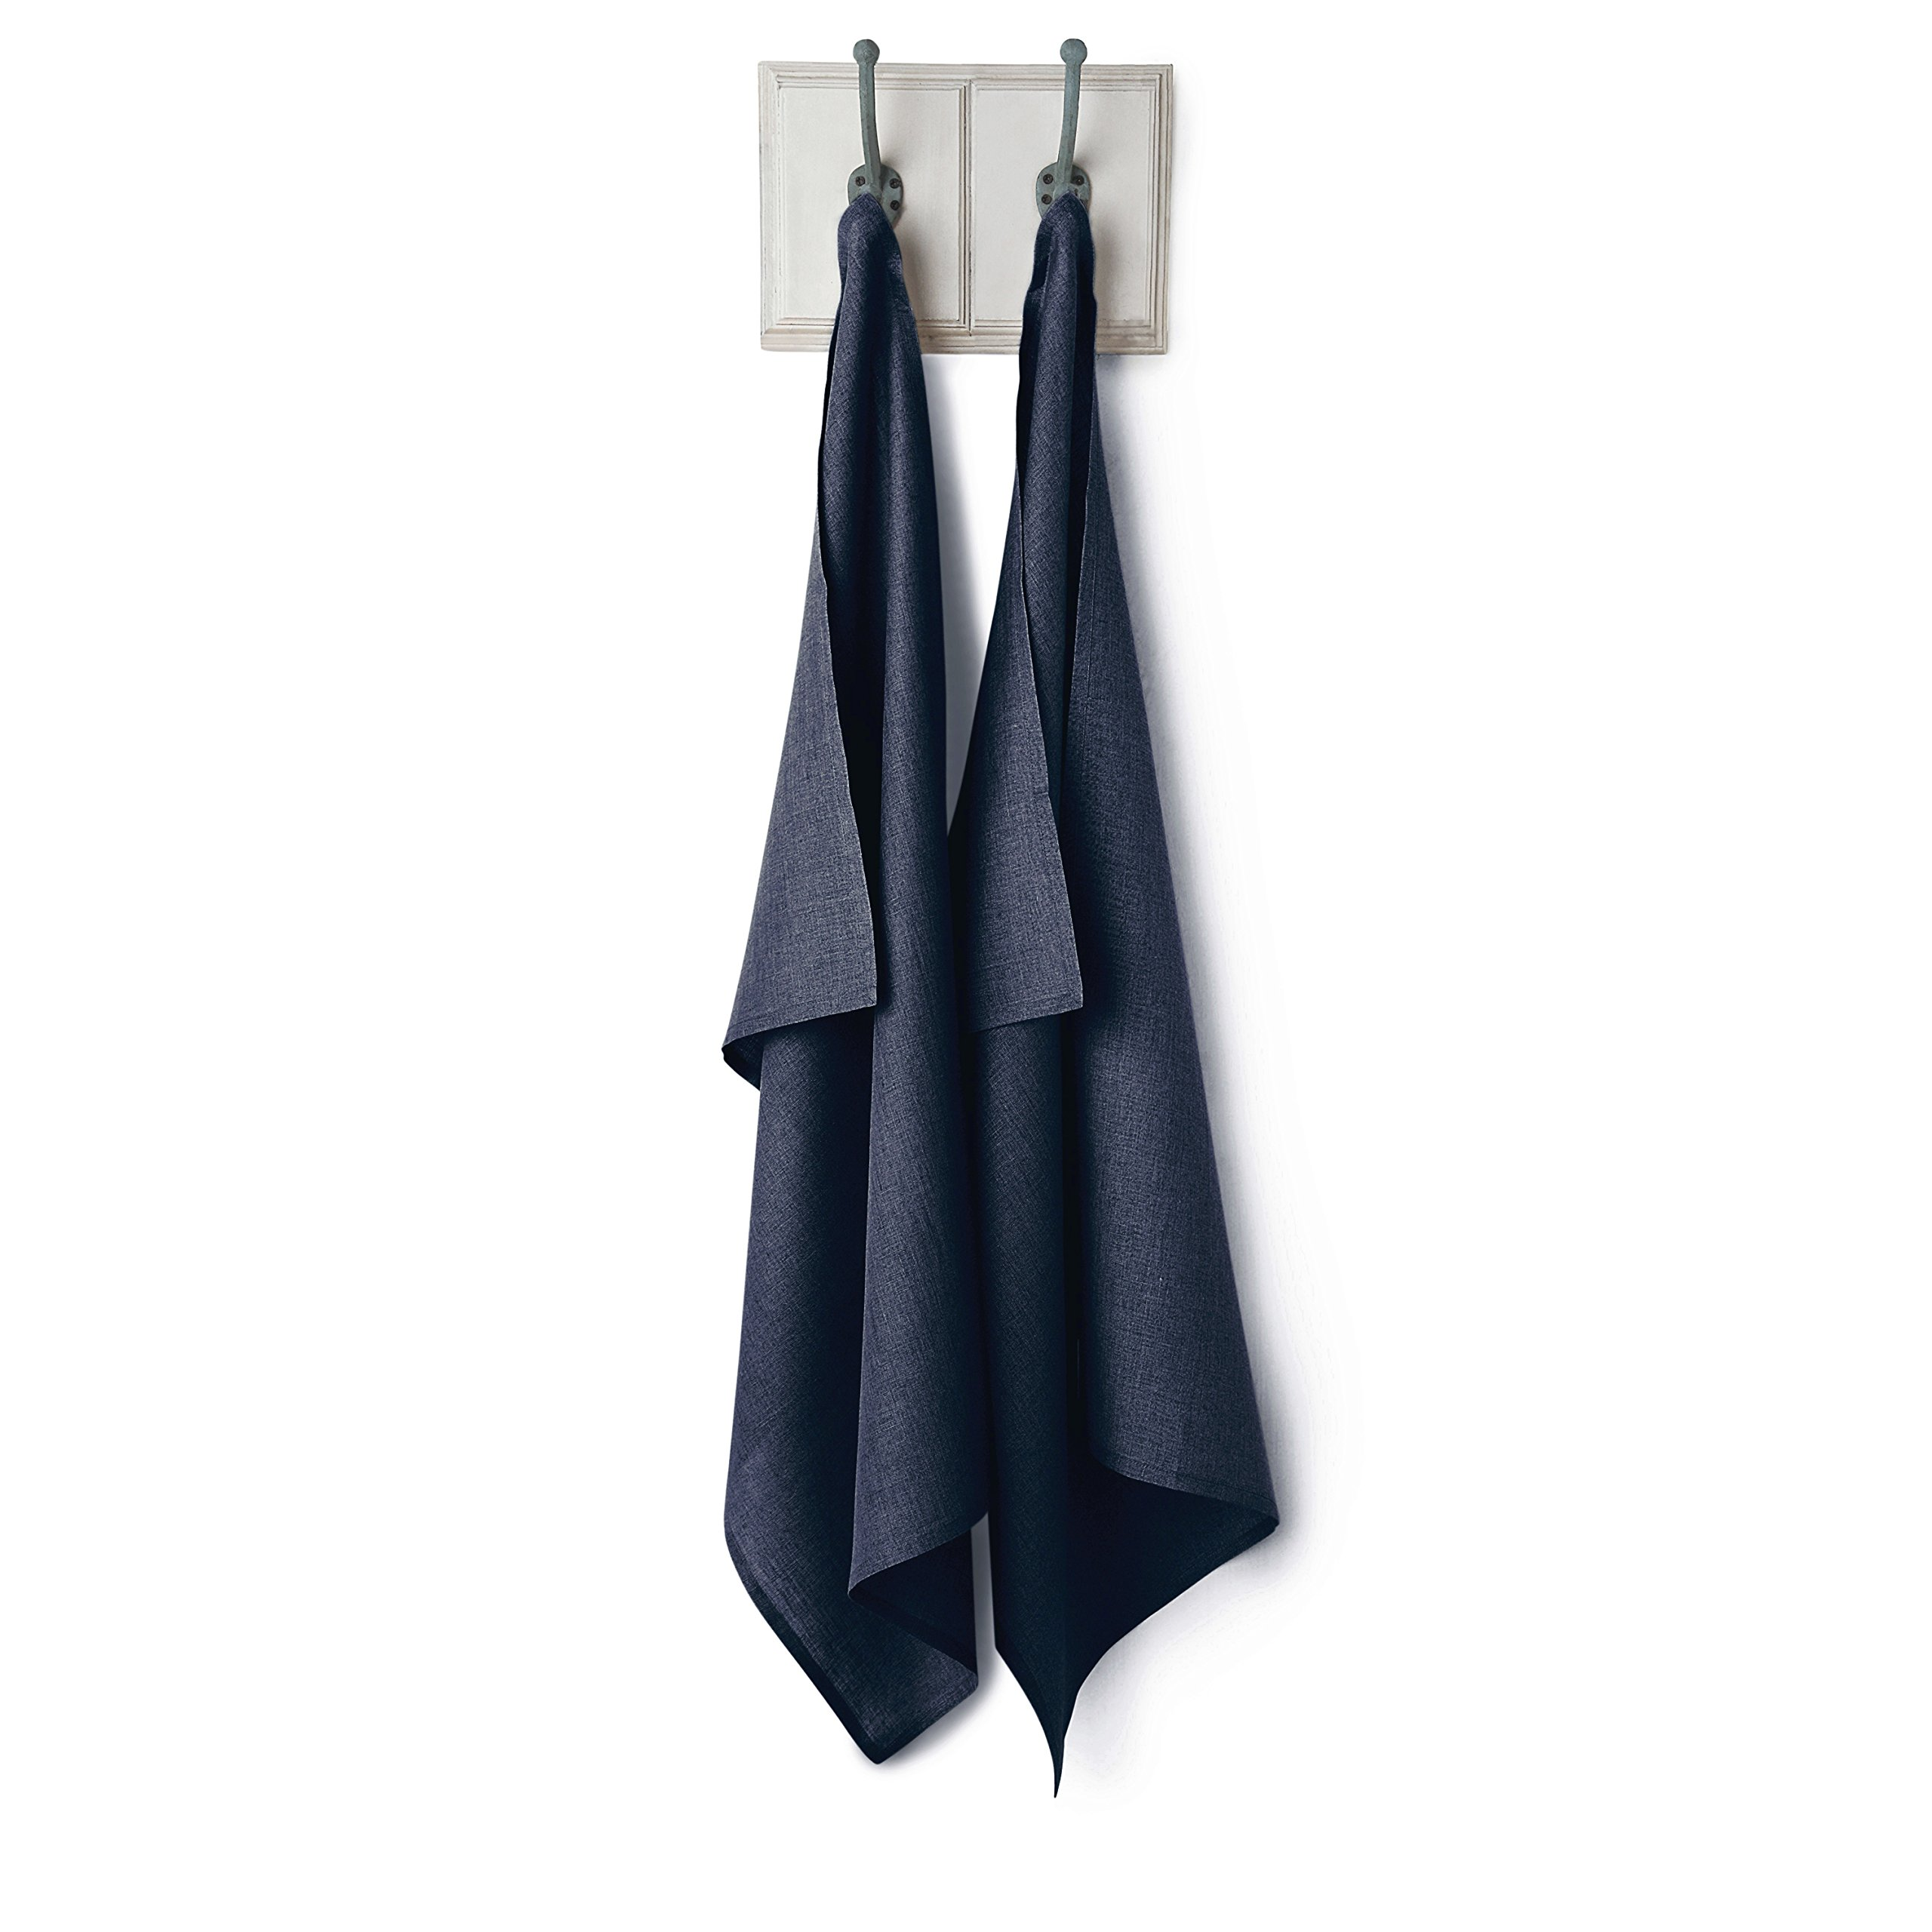 Solino Home Linen Kitchen Towel - 100% Pure Linen 17 x 26 Inch - Natural Fabric Handcrafted, Navy